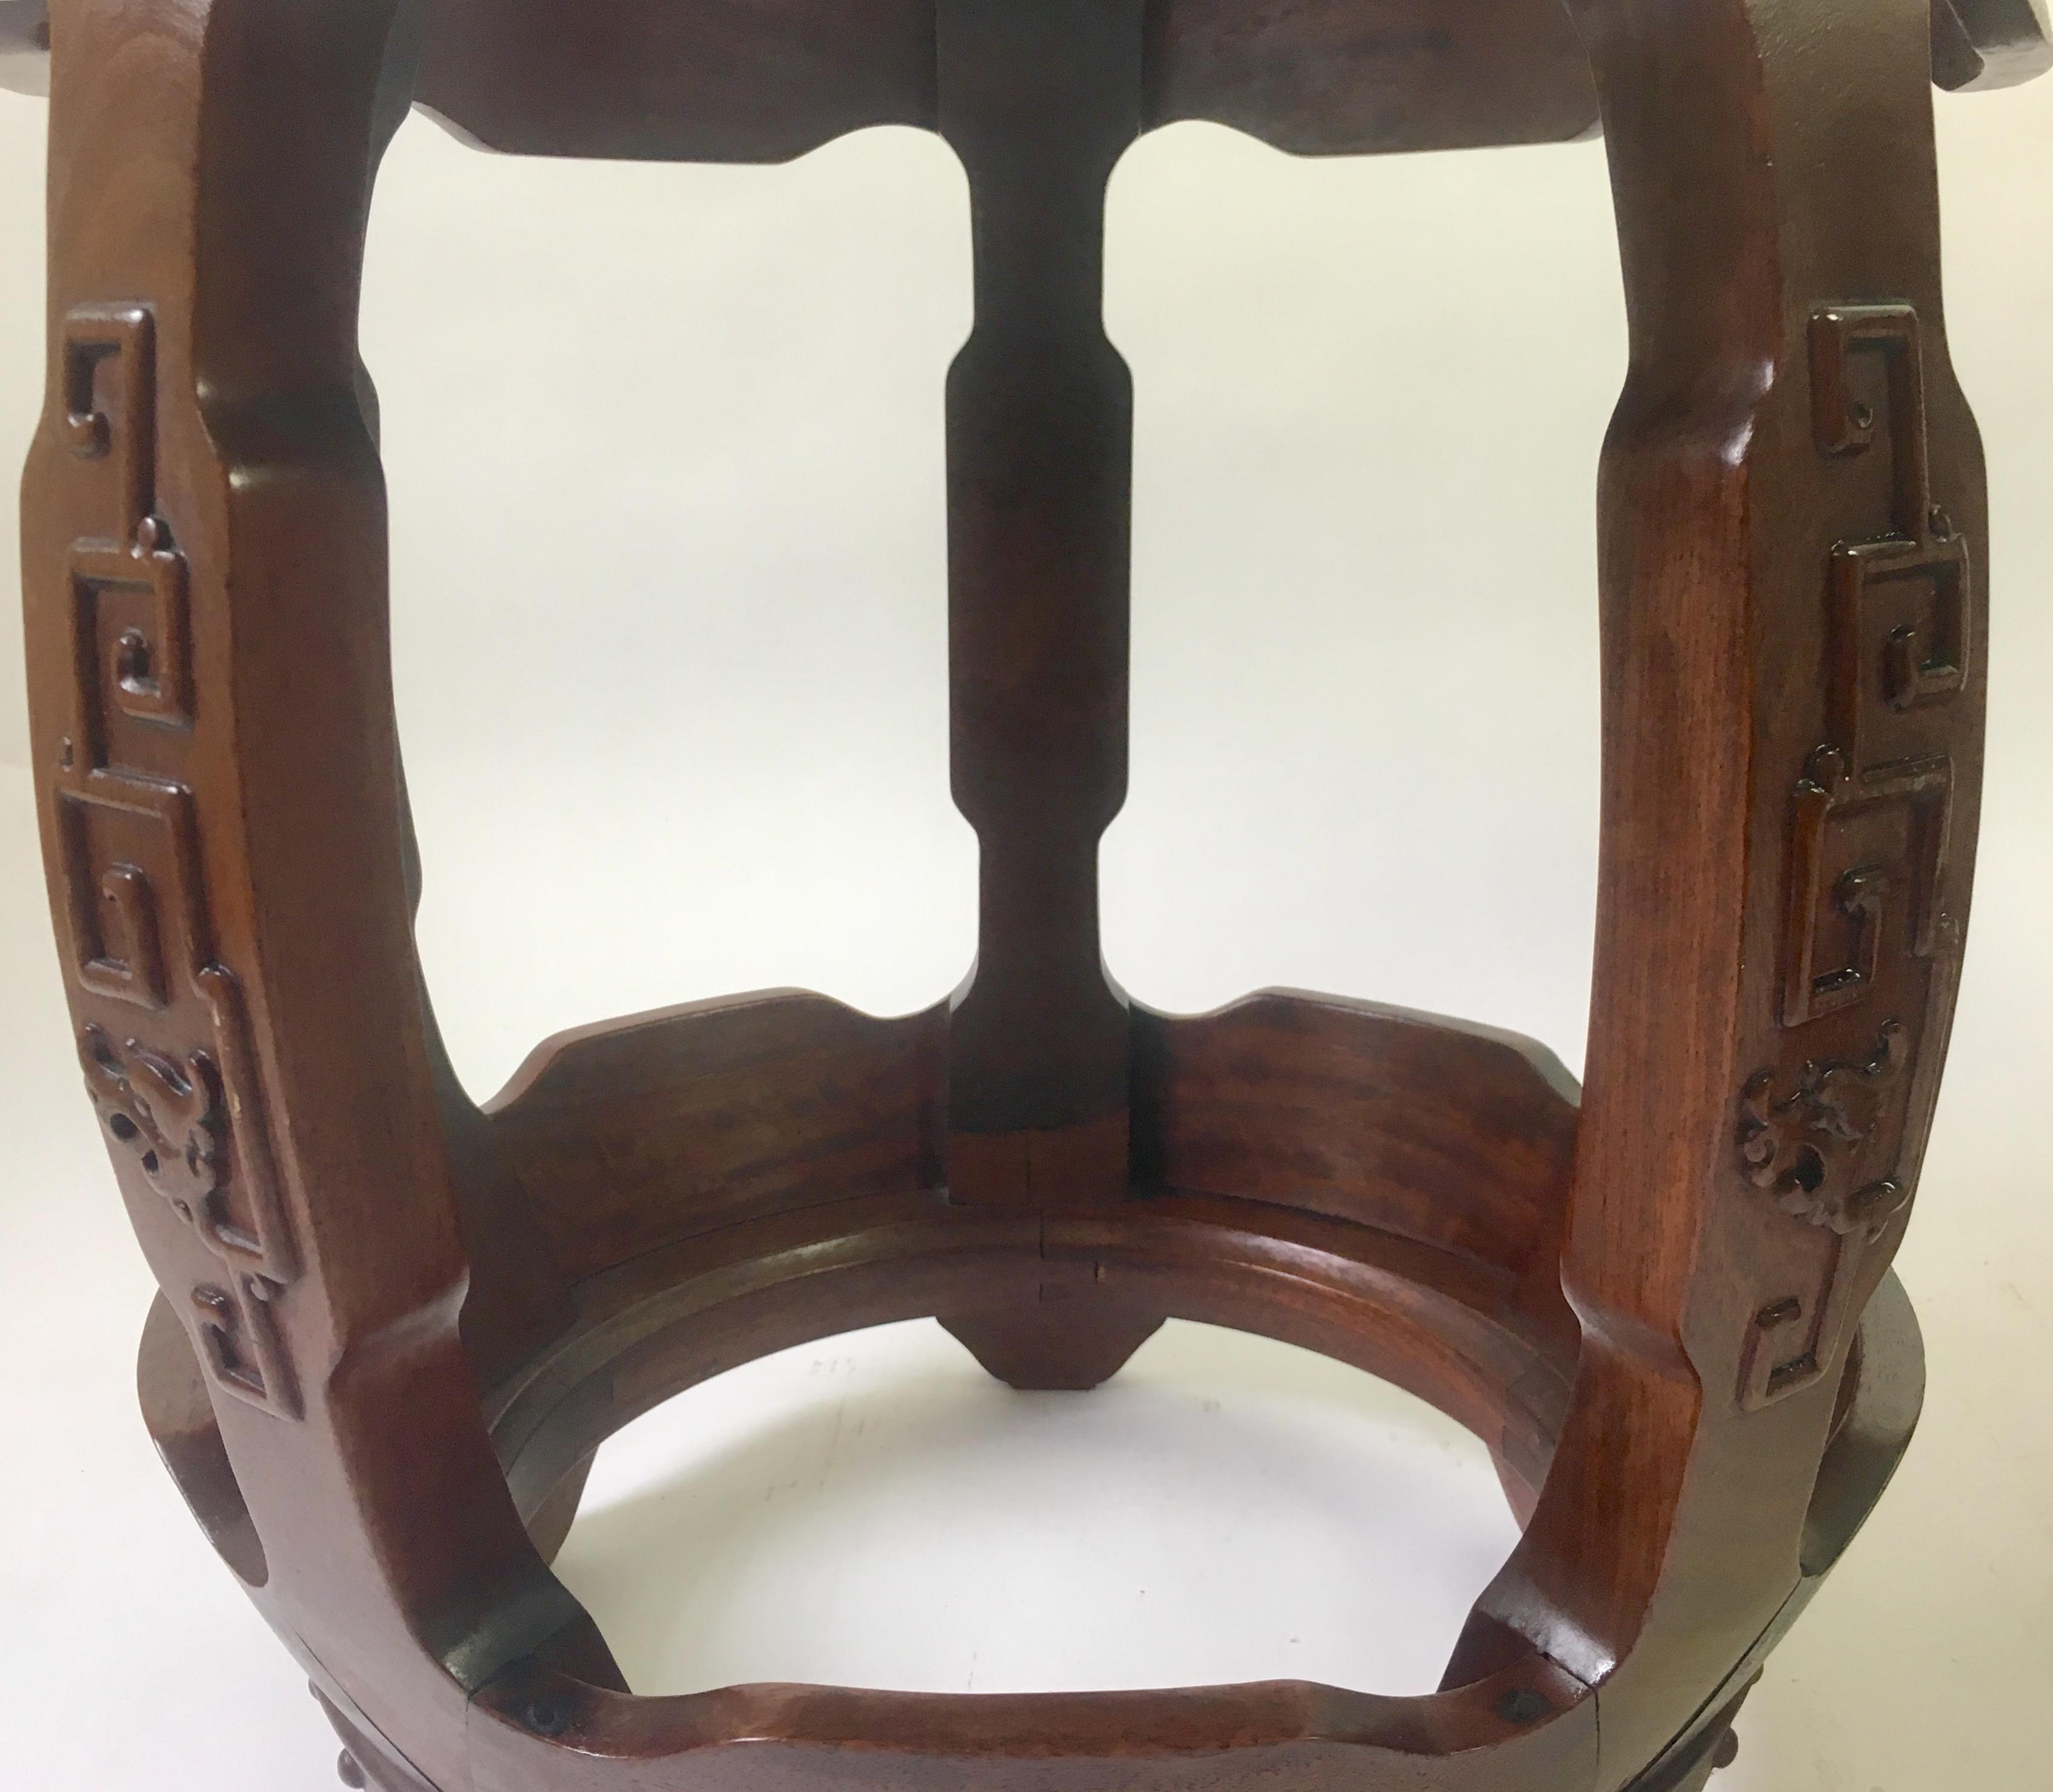 Antique Chinese Rosewood Drum Stools -- A Pair - Image 4 of 8 & Antique Chinese Rosewood Drum Stools -- A Pair | Chairish islam-shia.org